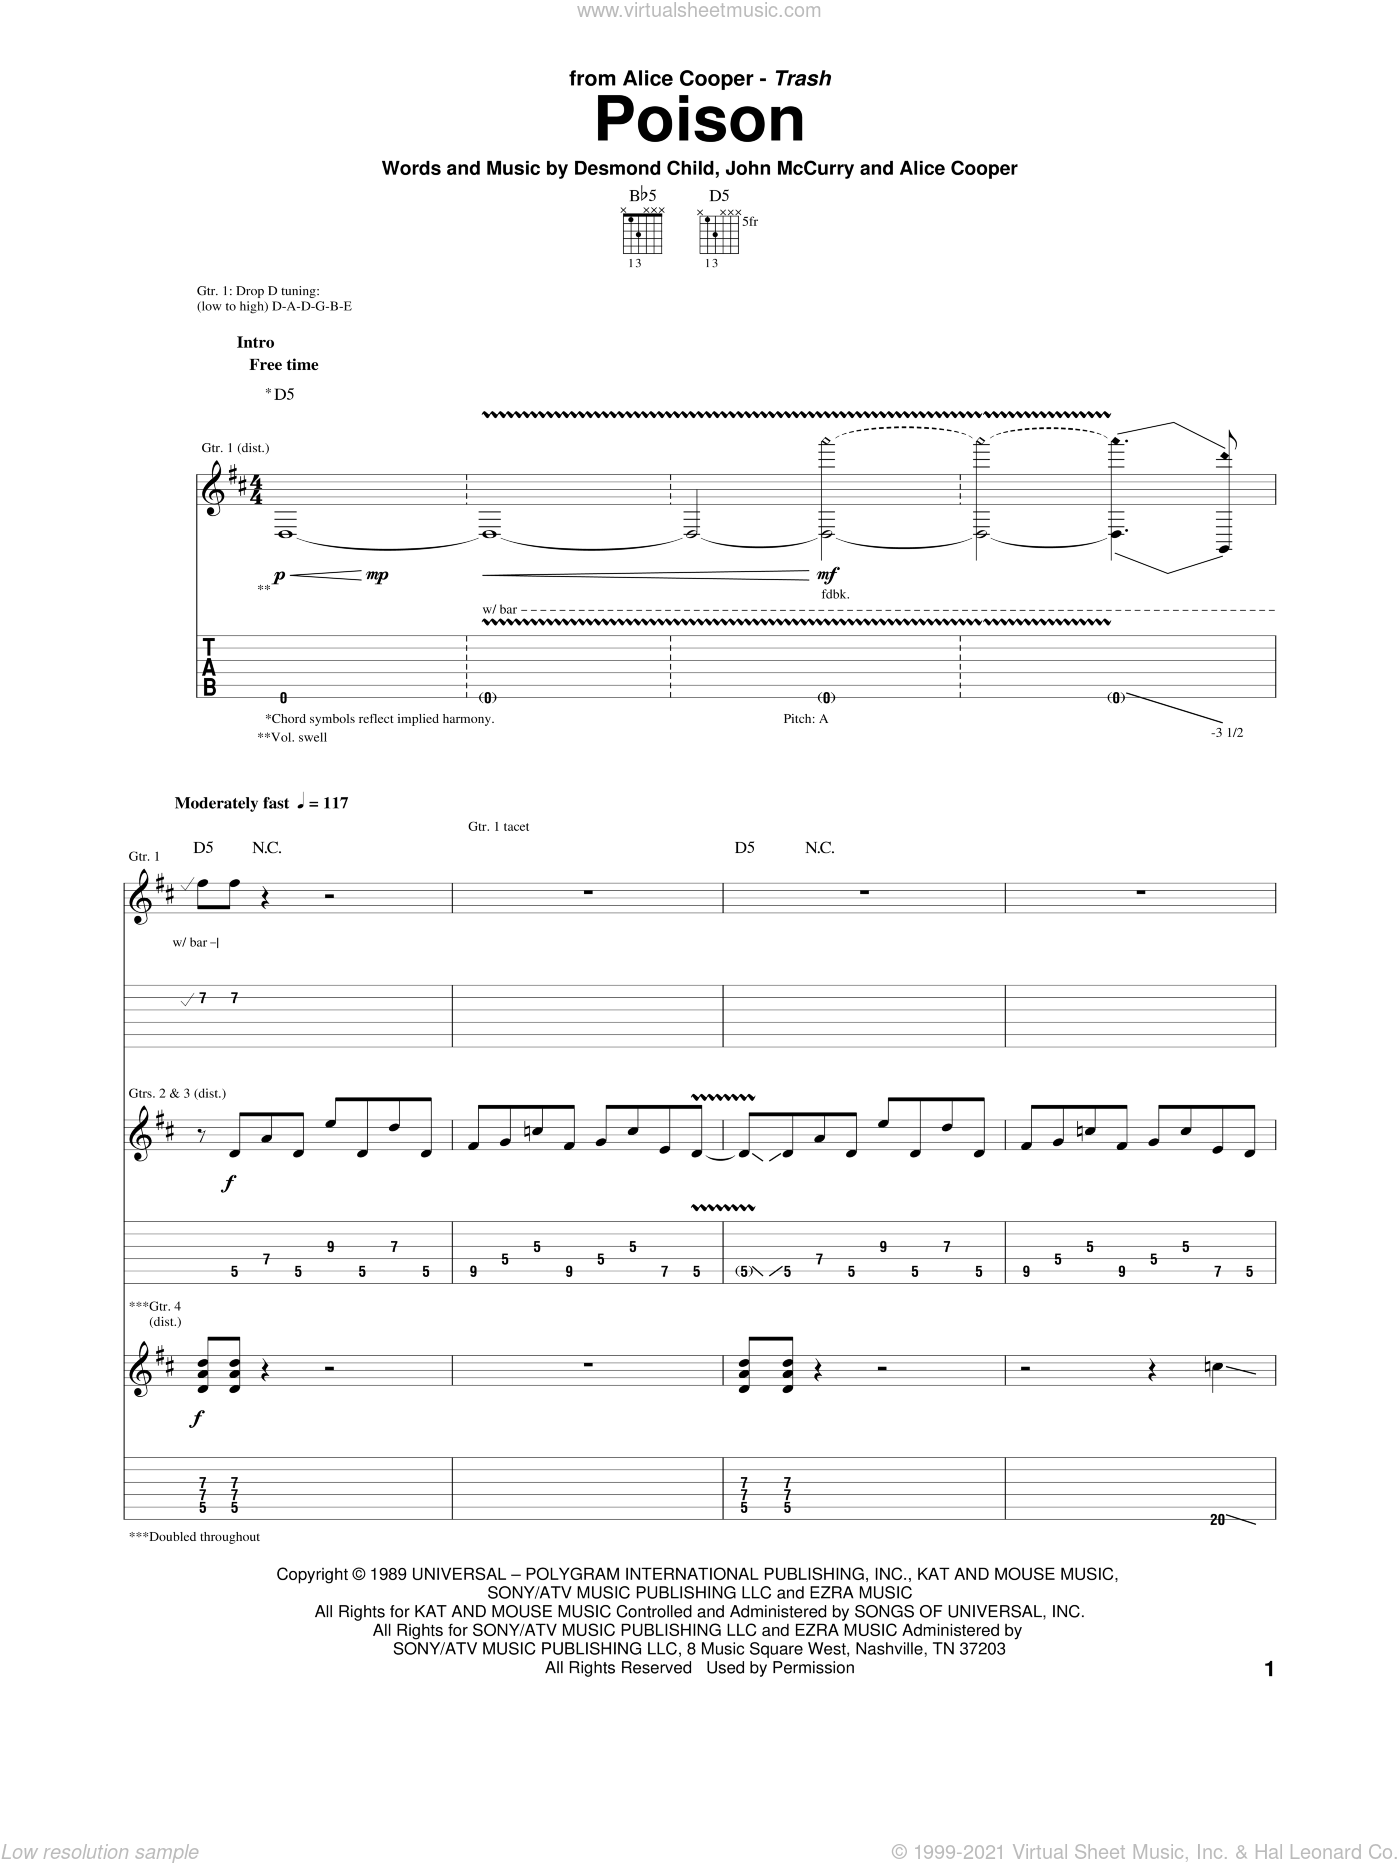 Poison sheet music for guitar (tablature) by Alice Cooper, Desmond Child and John McCurry, intermediate skill level